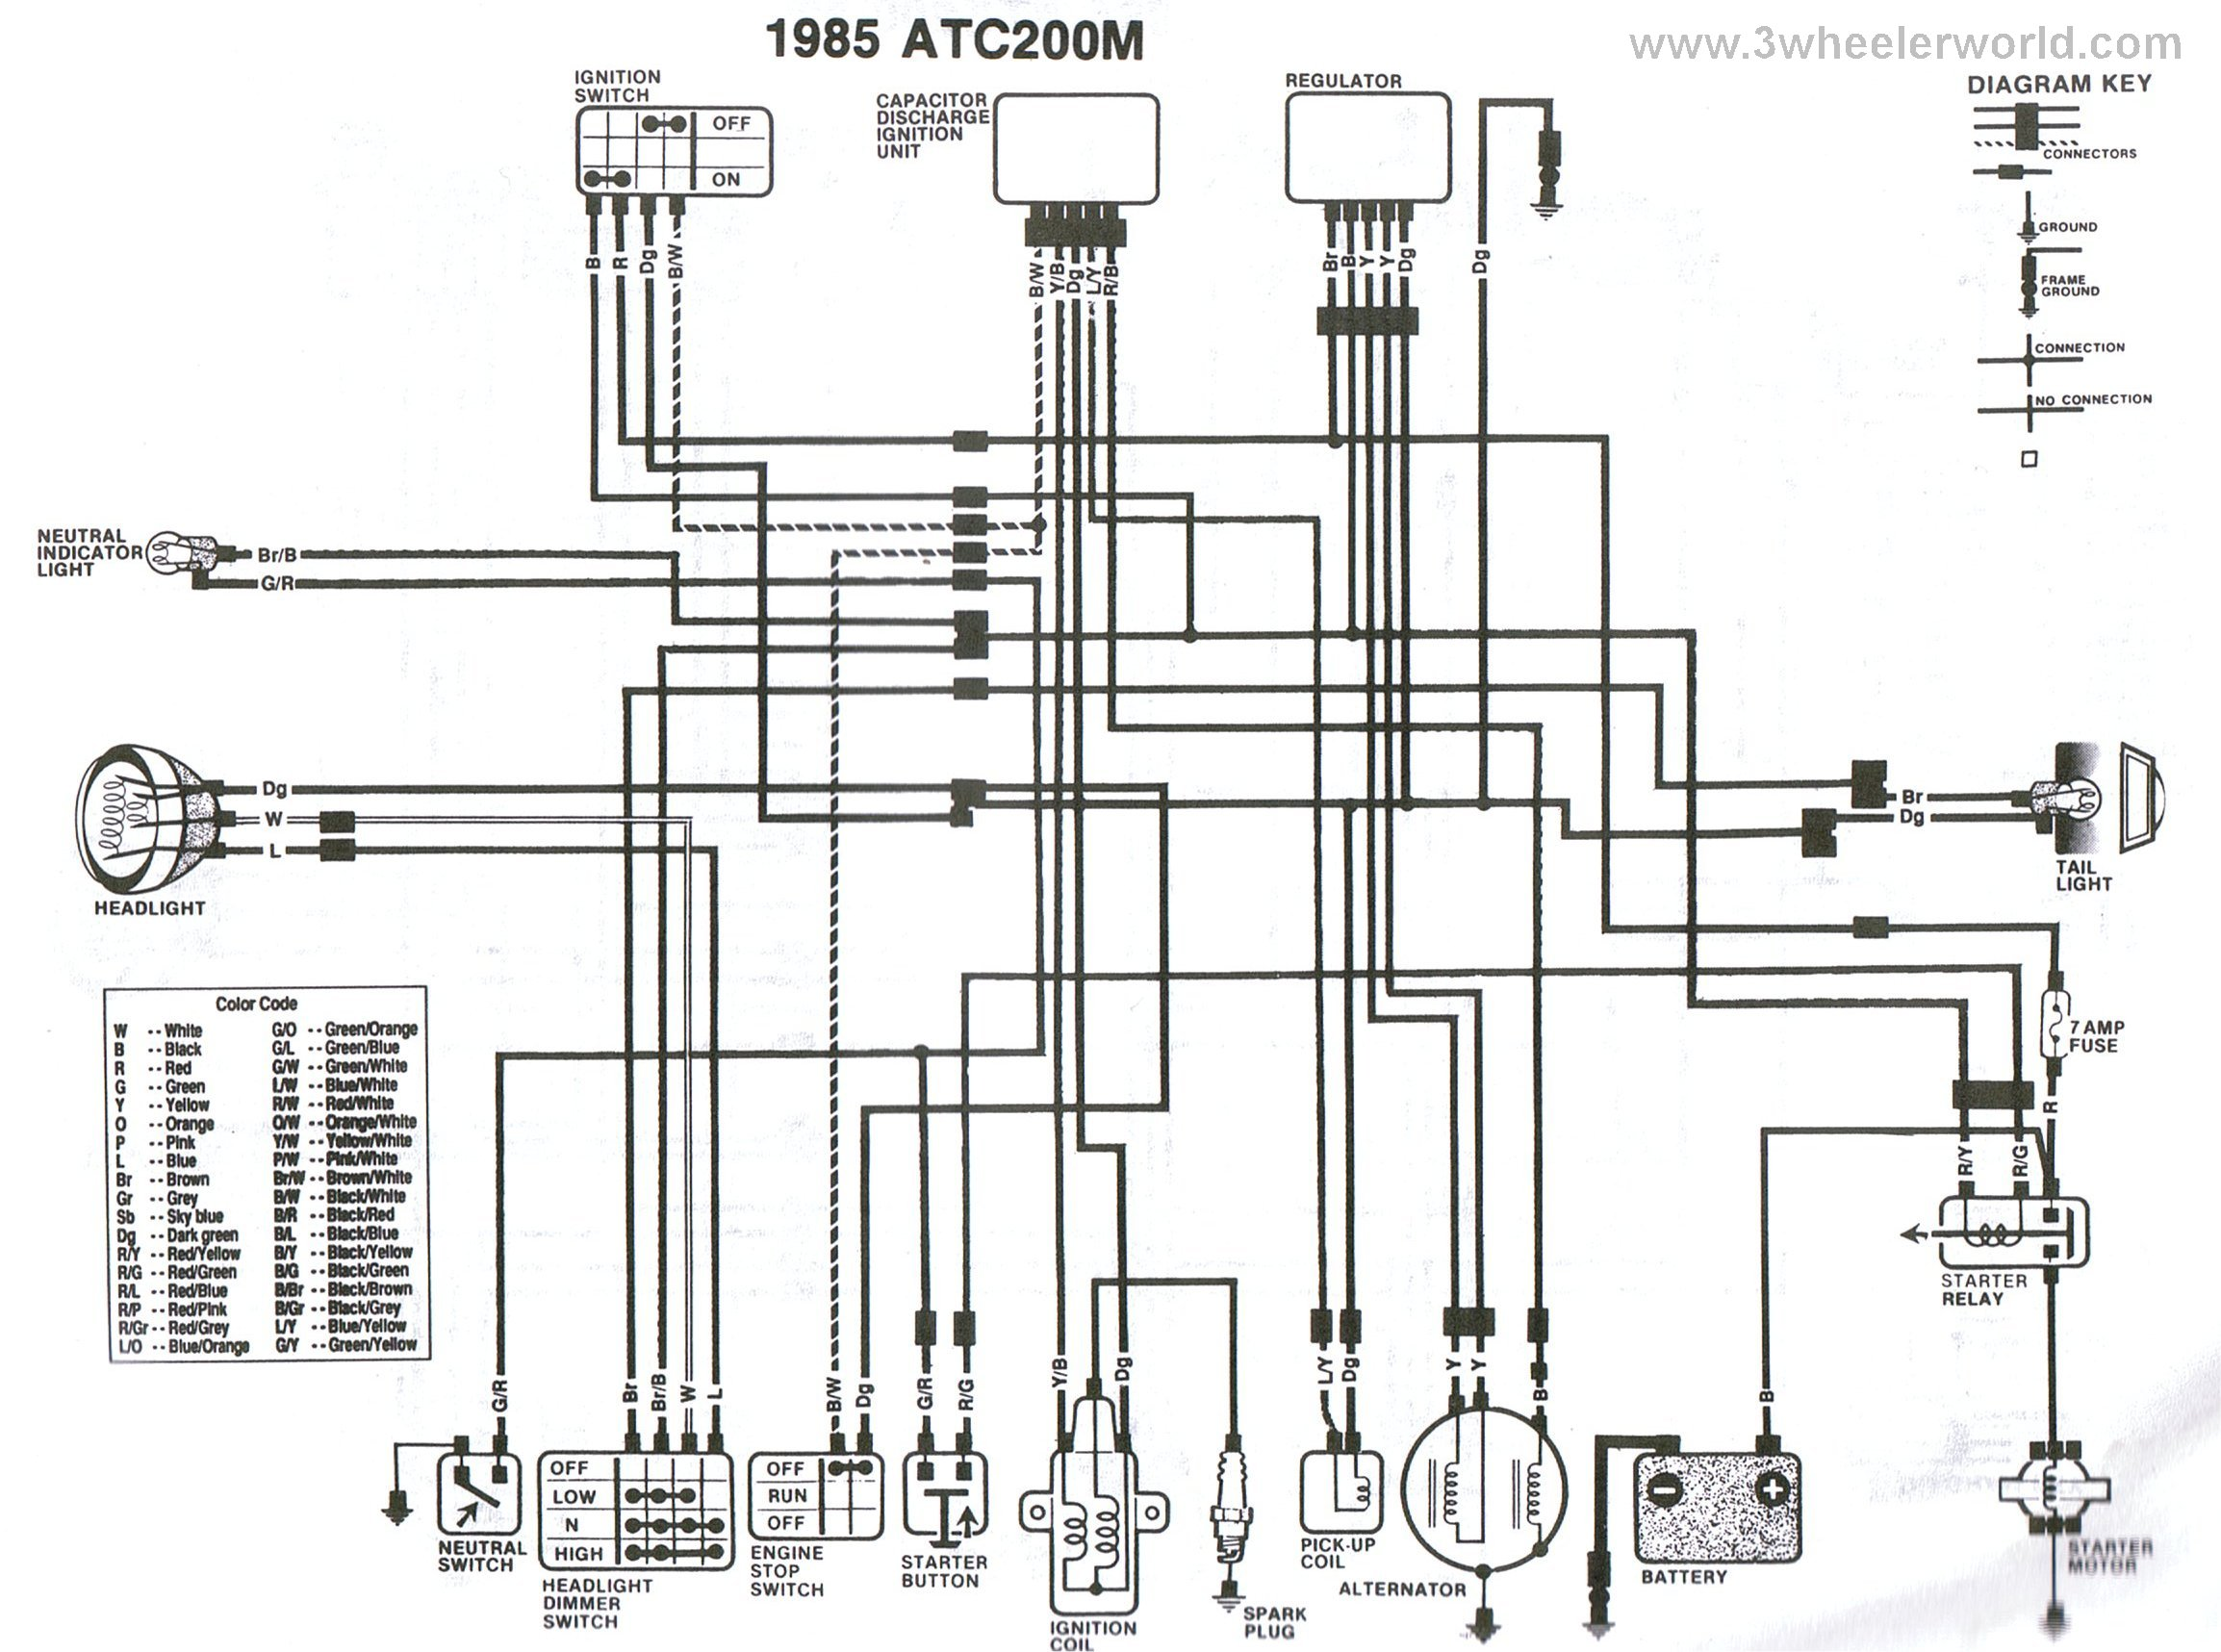 ATC200Mx85 3 wheeler world tech help honda wiring diagrams honda atv wiring diagram at gsmx.co